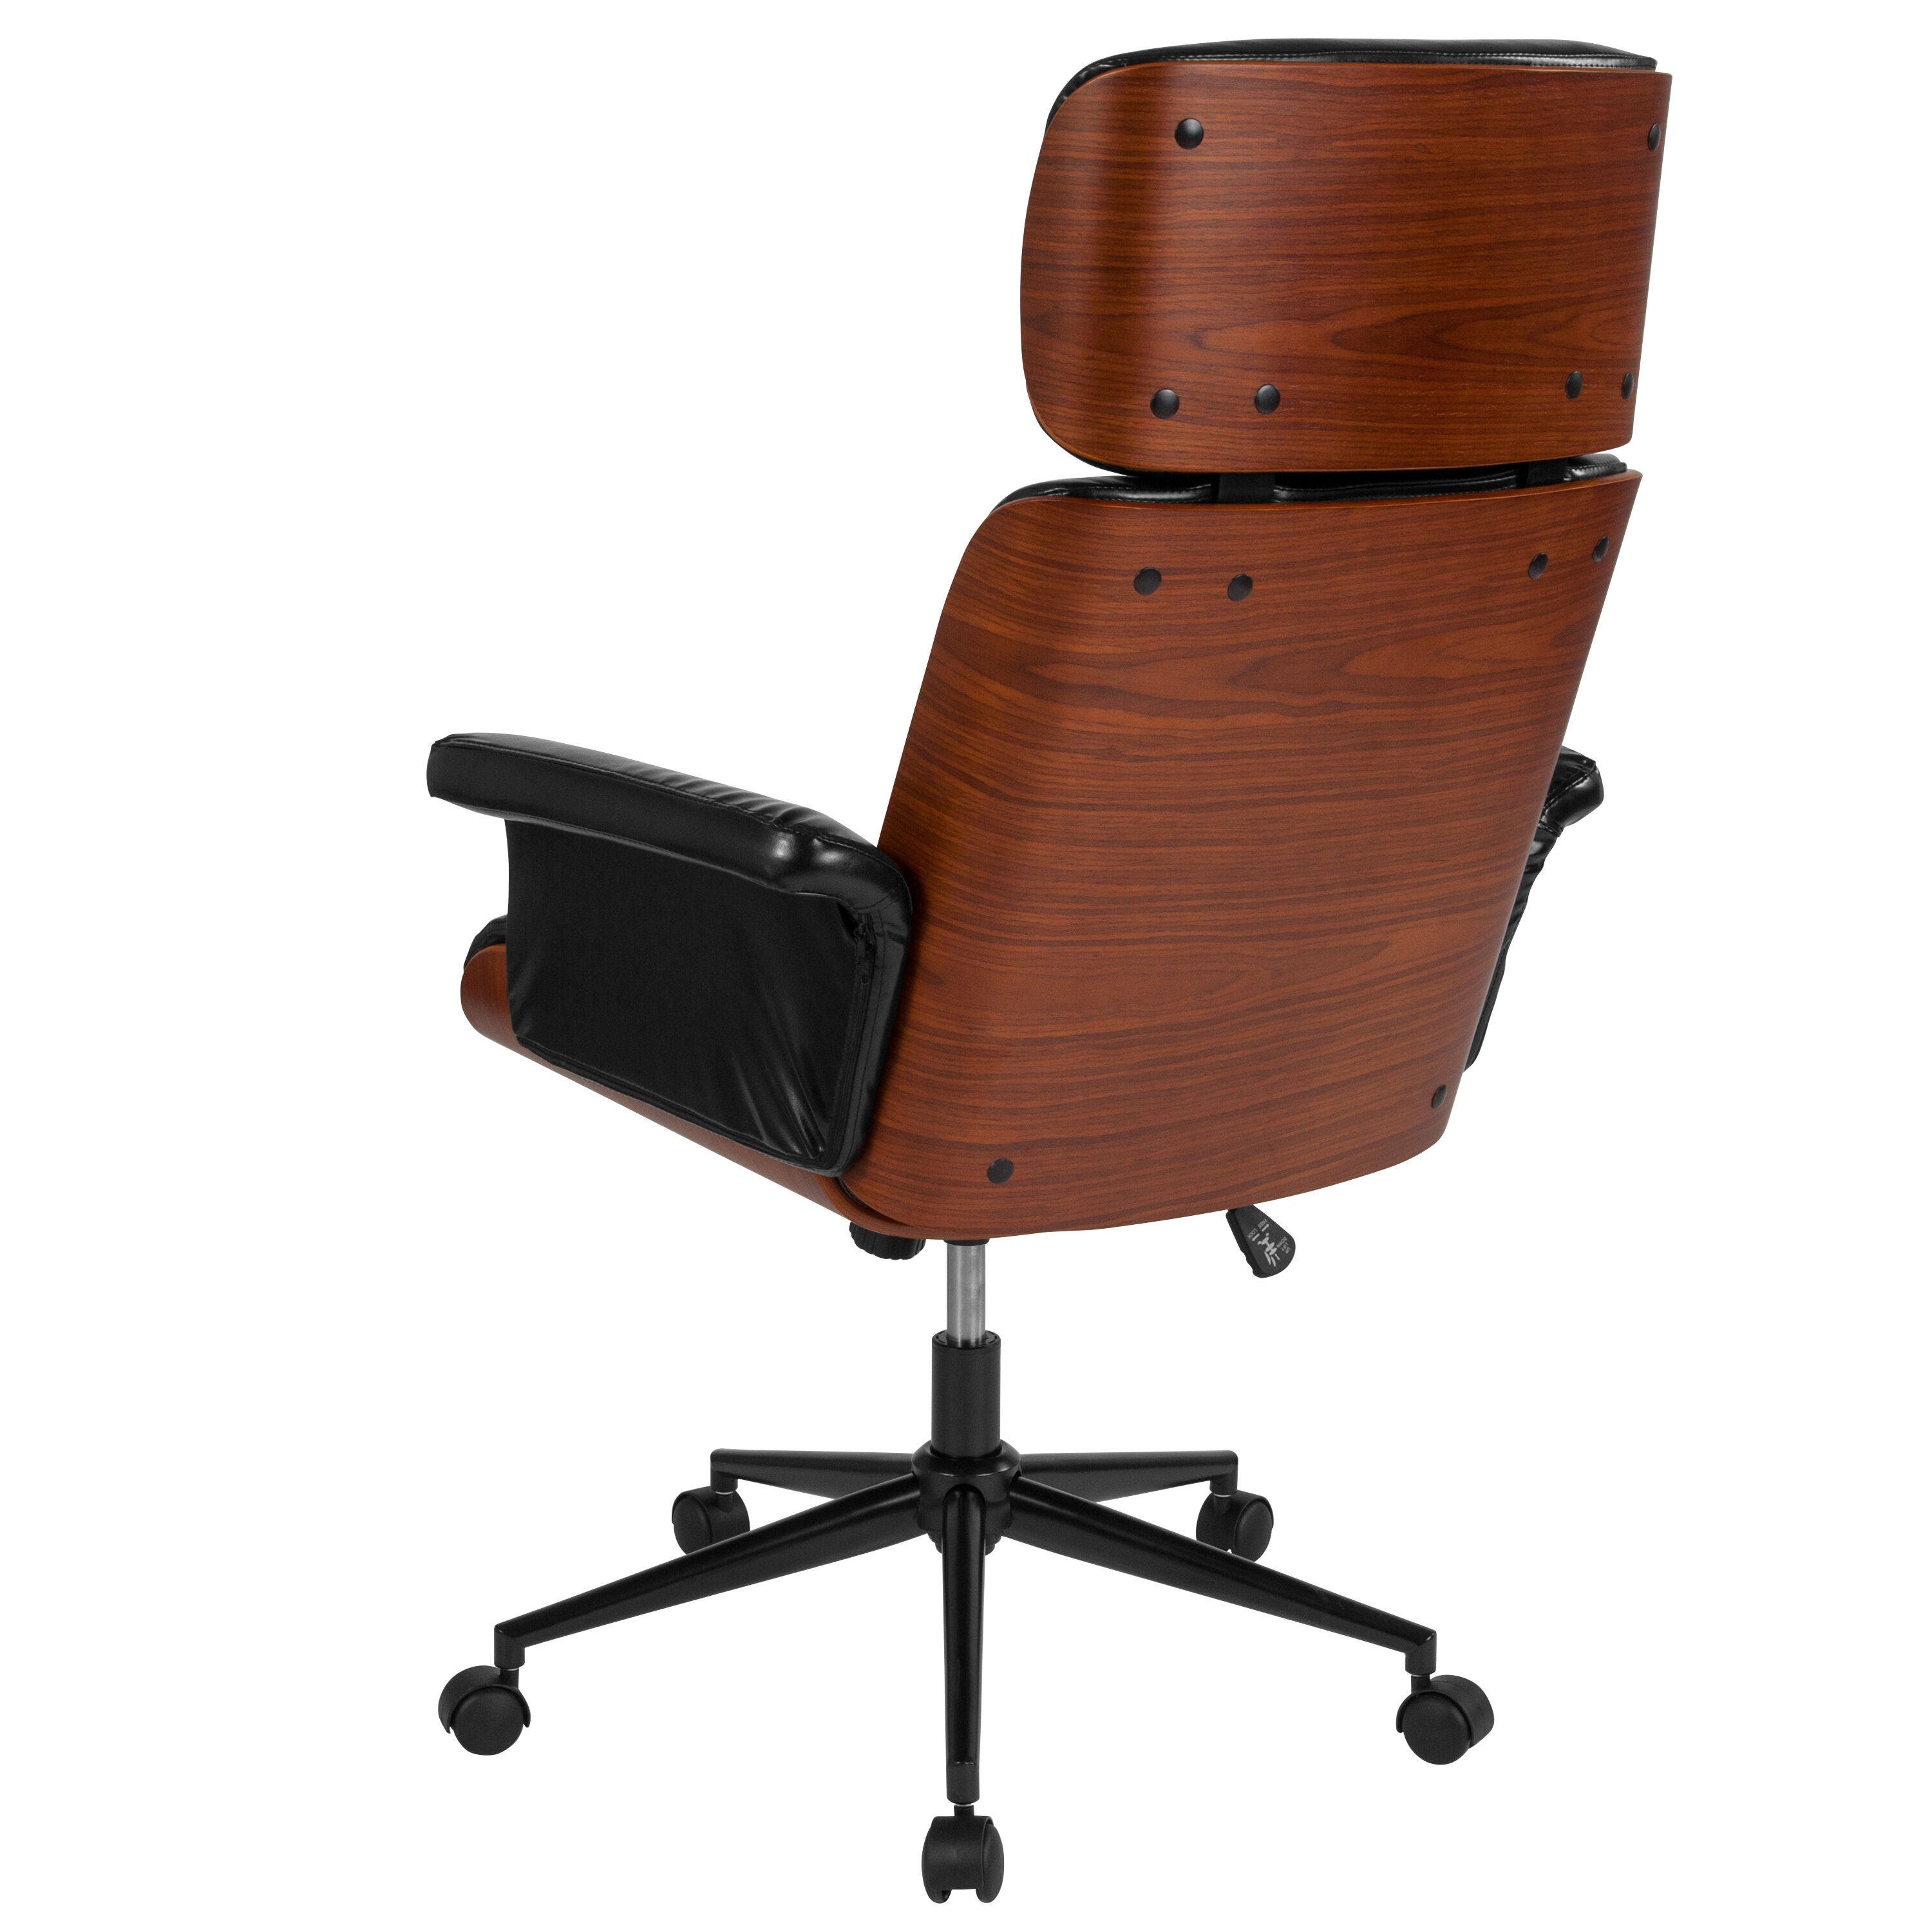 Leather And Wood Chair Contemporary Black Leather High Back Walnut Wood Executive Swivel Ergonomic Office Chair